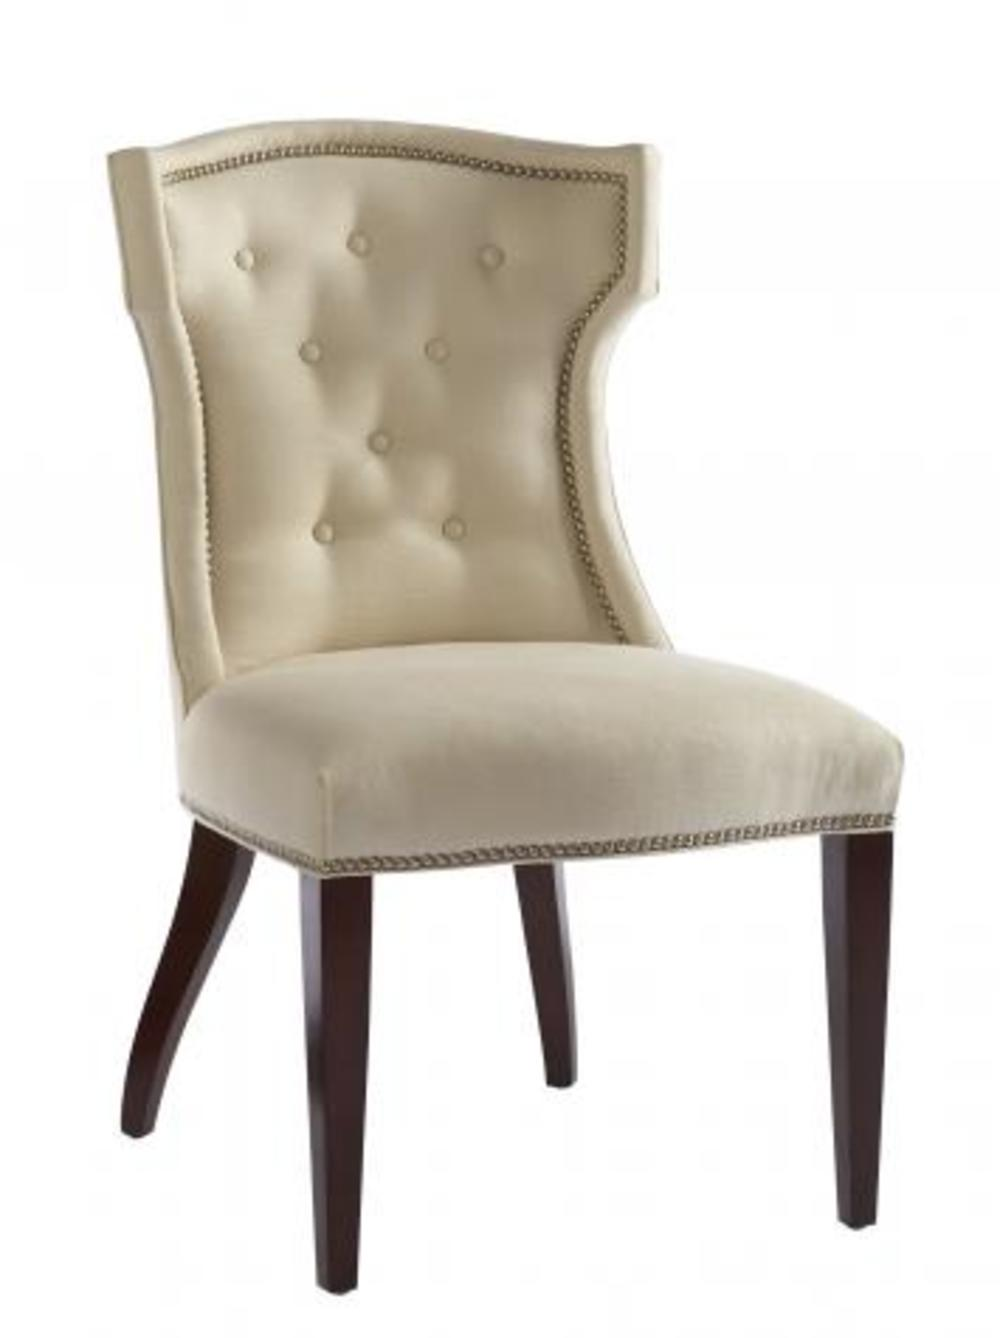 Lillian August Fine Furniture - Quinn Chair